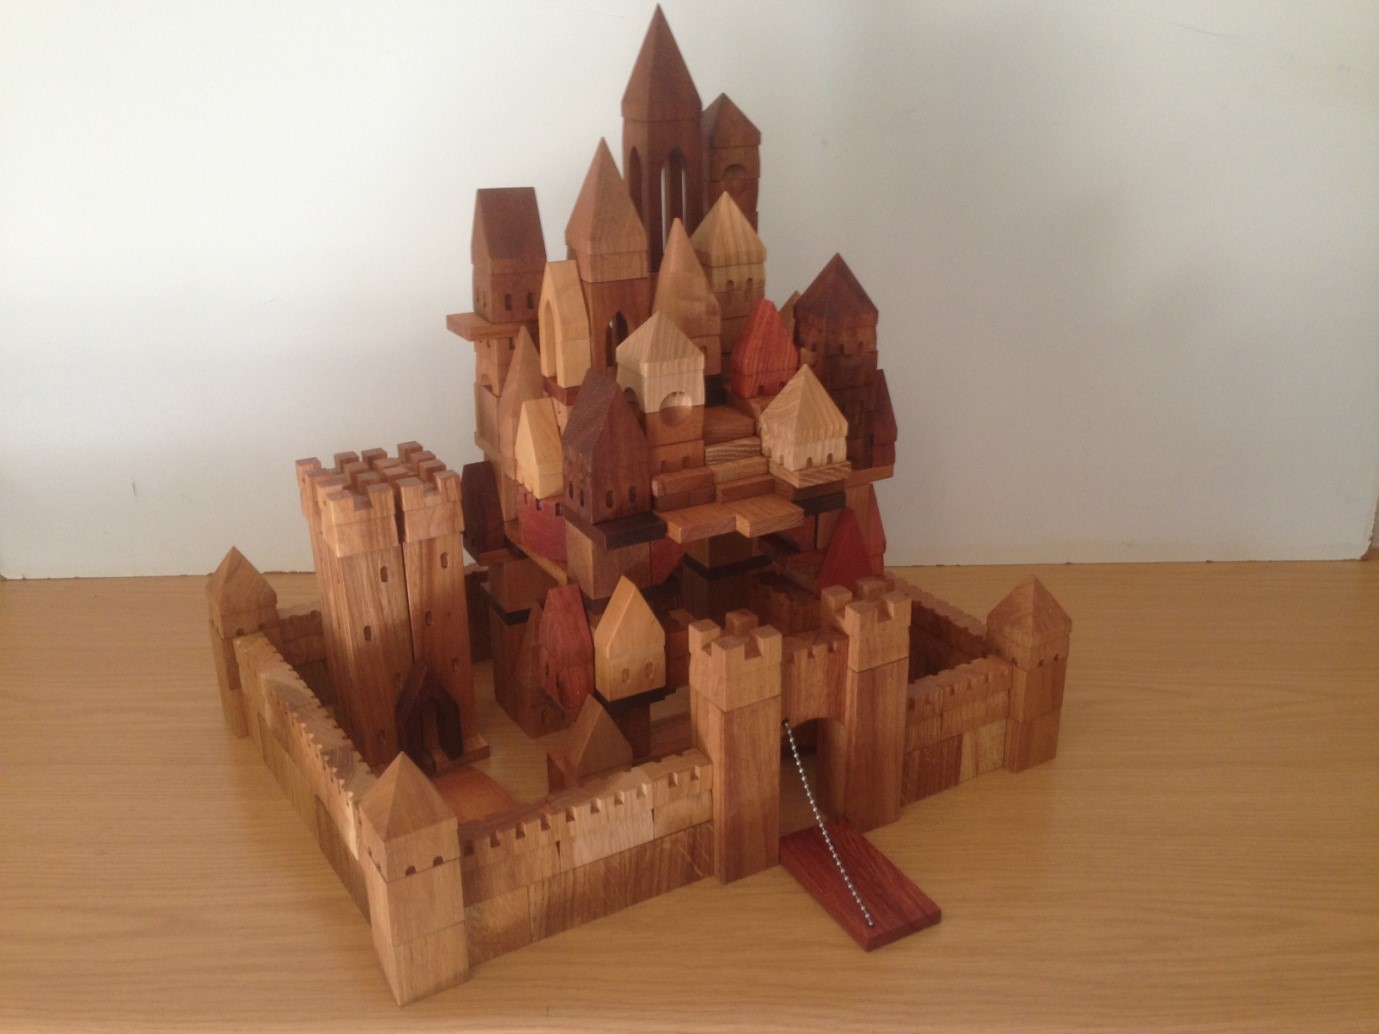 Walled Medieval city with drawbridge. Wooden blocks are made of hard and precious woods. Blocks for city: 130 pieces. Wall with drawbridge: 75 pieces